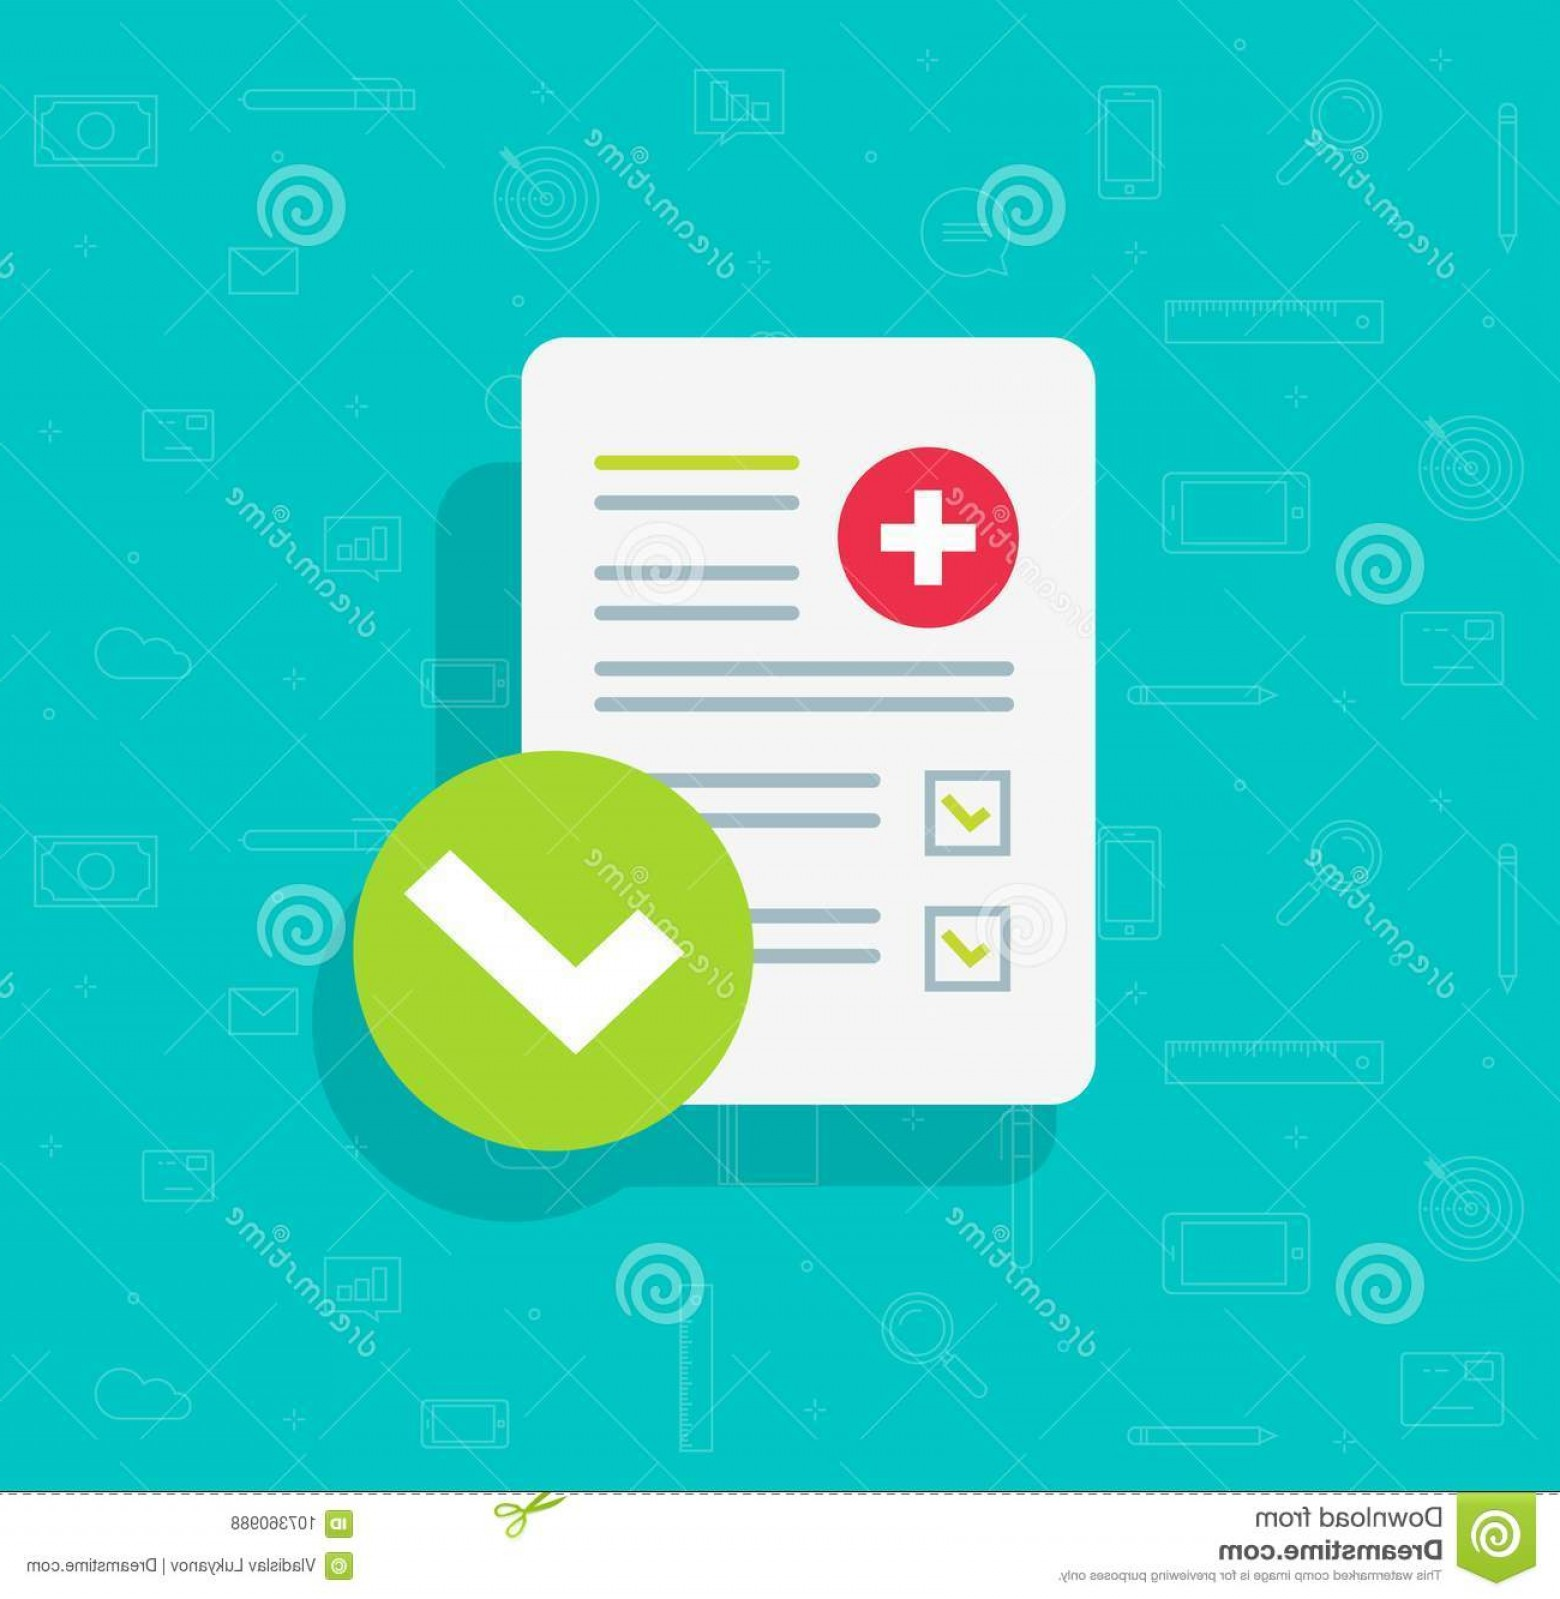 Vector Round Name List: Medical Form List Results Data Approved Check Mark Vector Illustration Flat Cartoon Clinical Checklist Document Checkbox Image